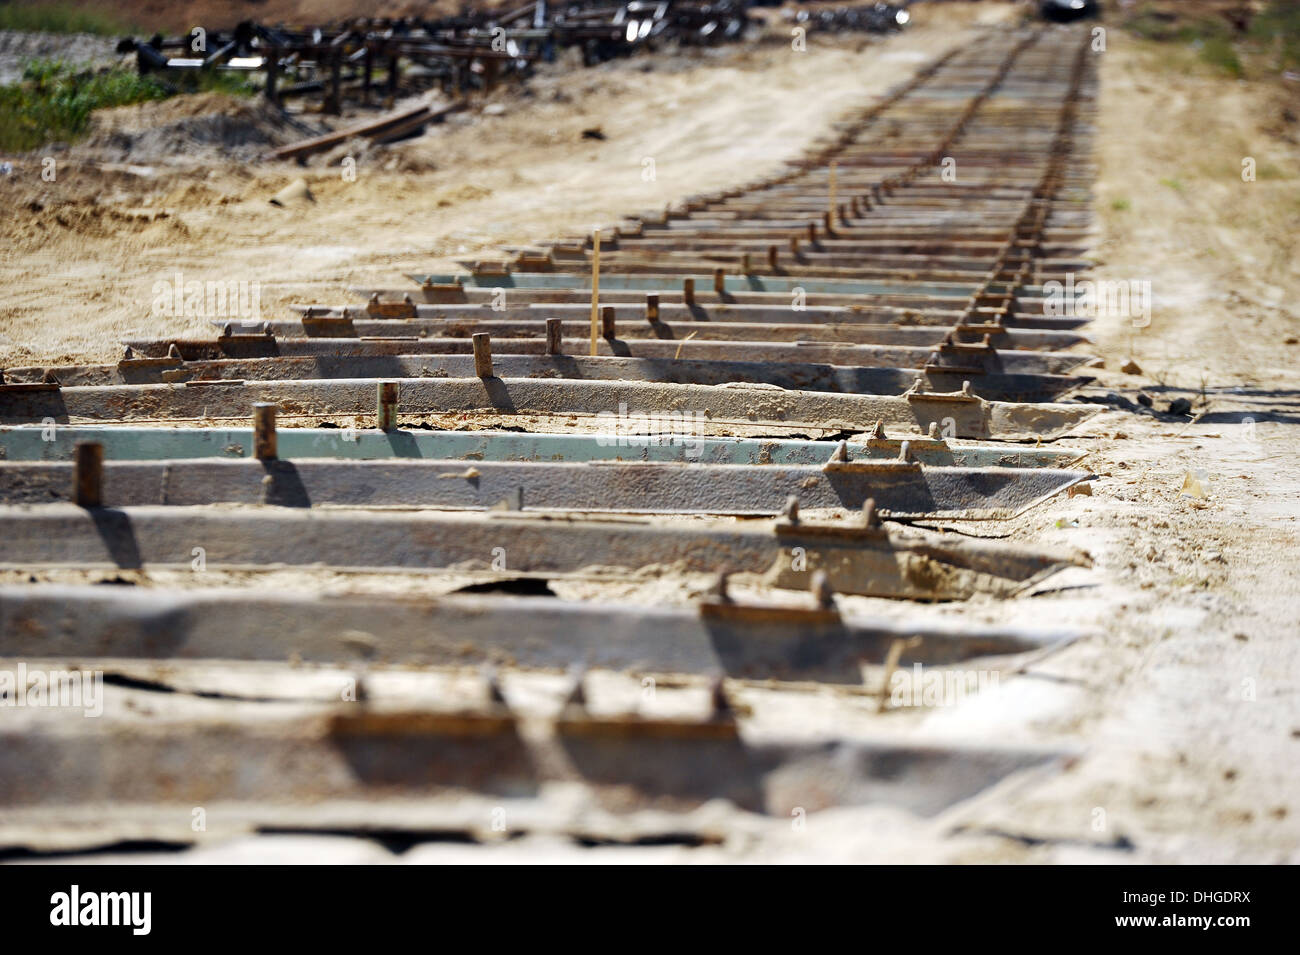 Installation of rolling stock preparation of metal bars - Stock Image